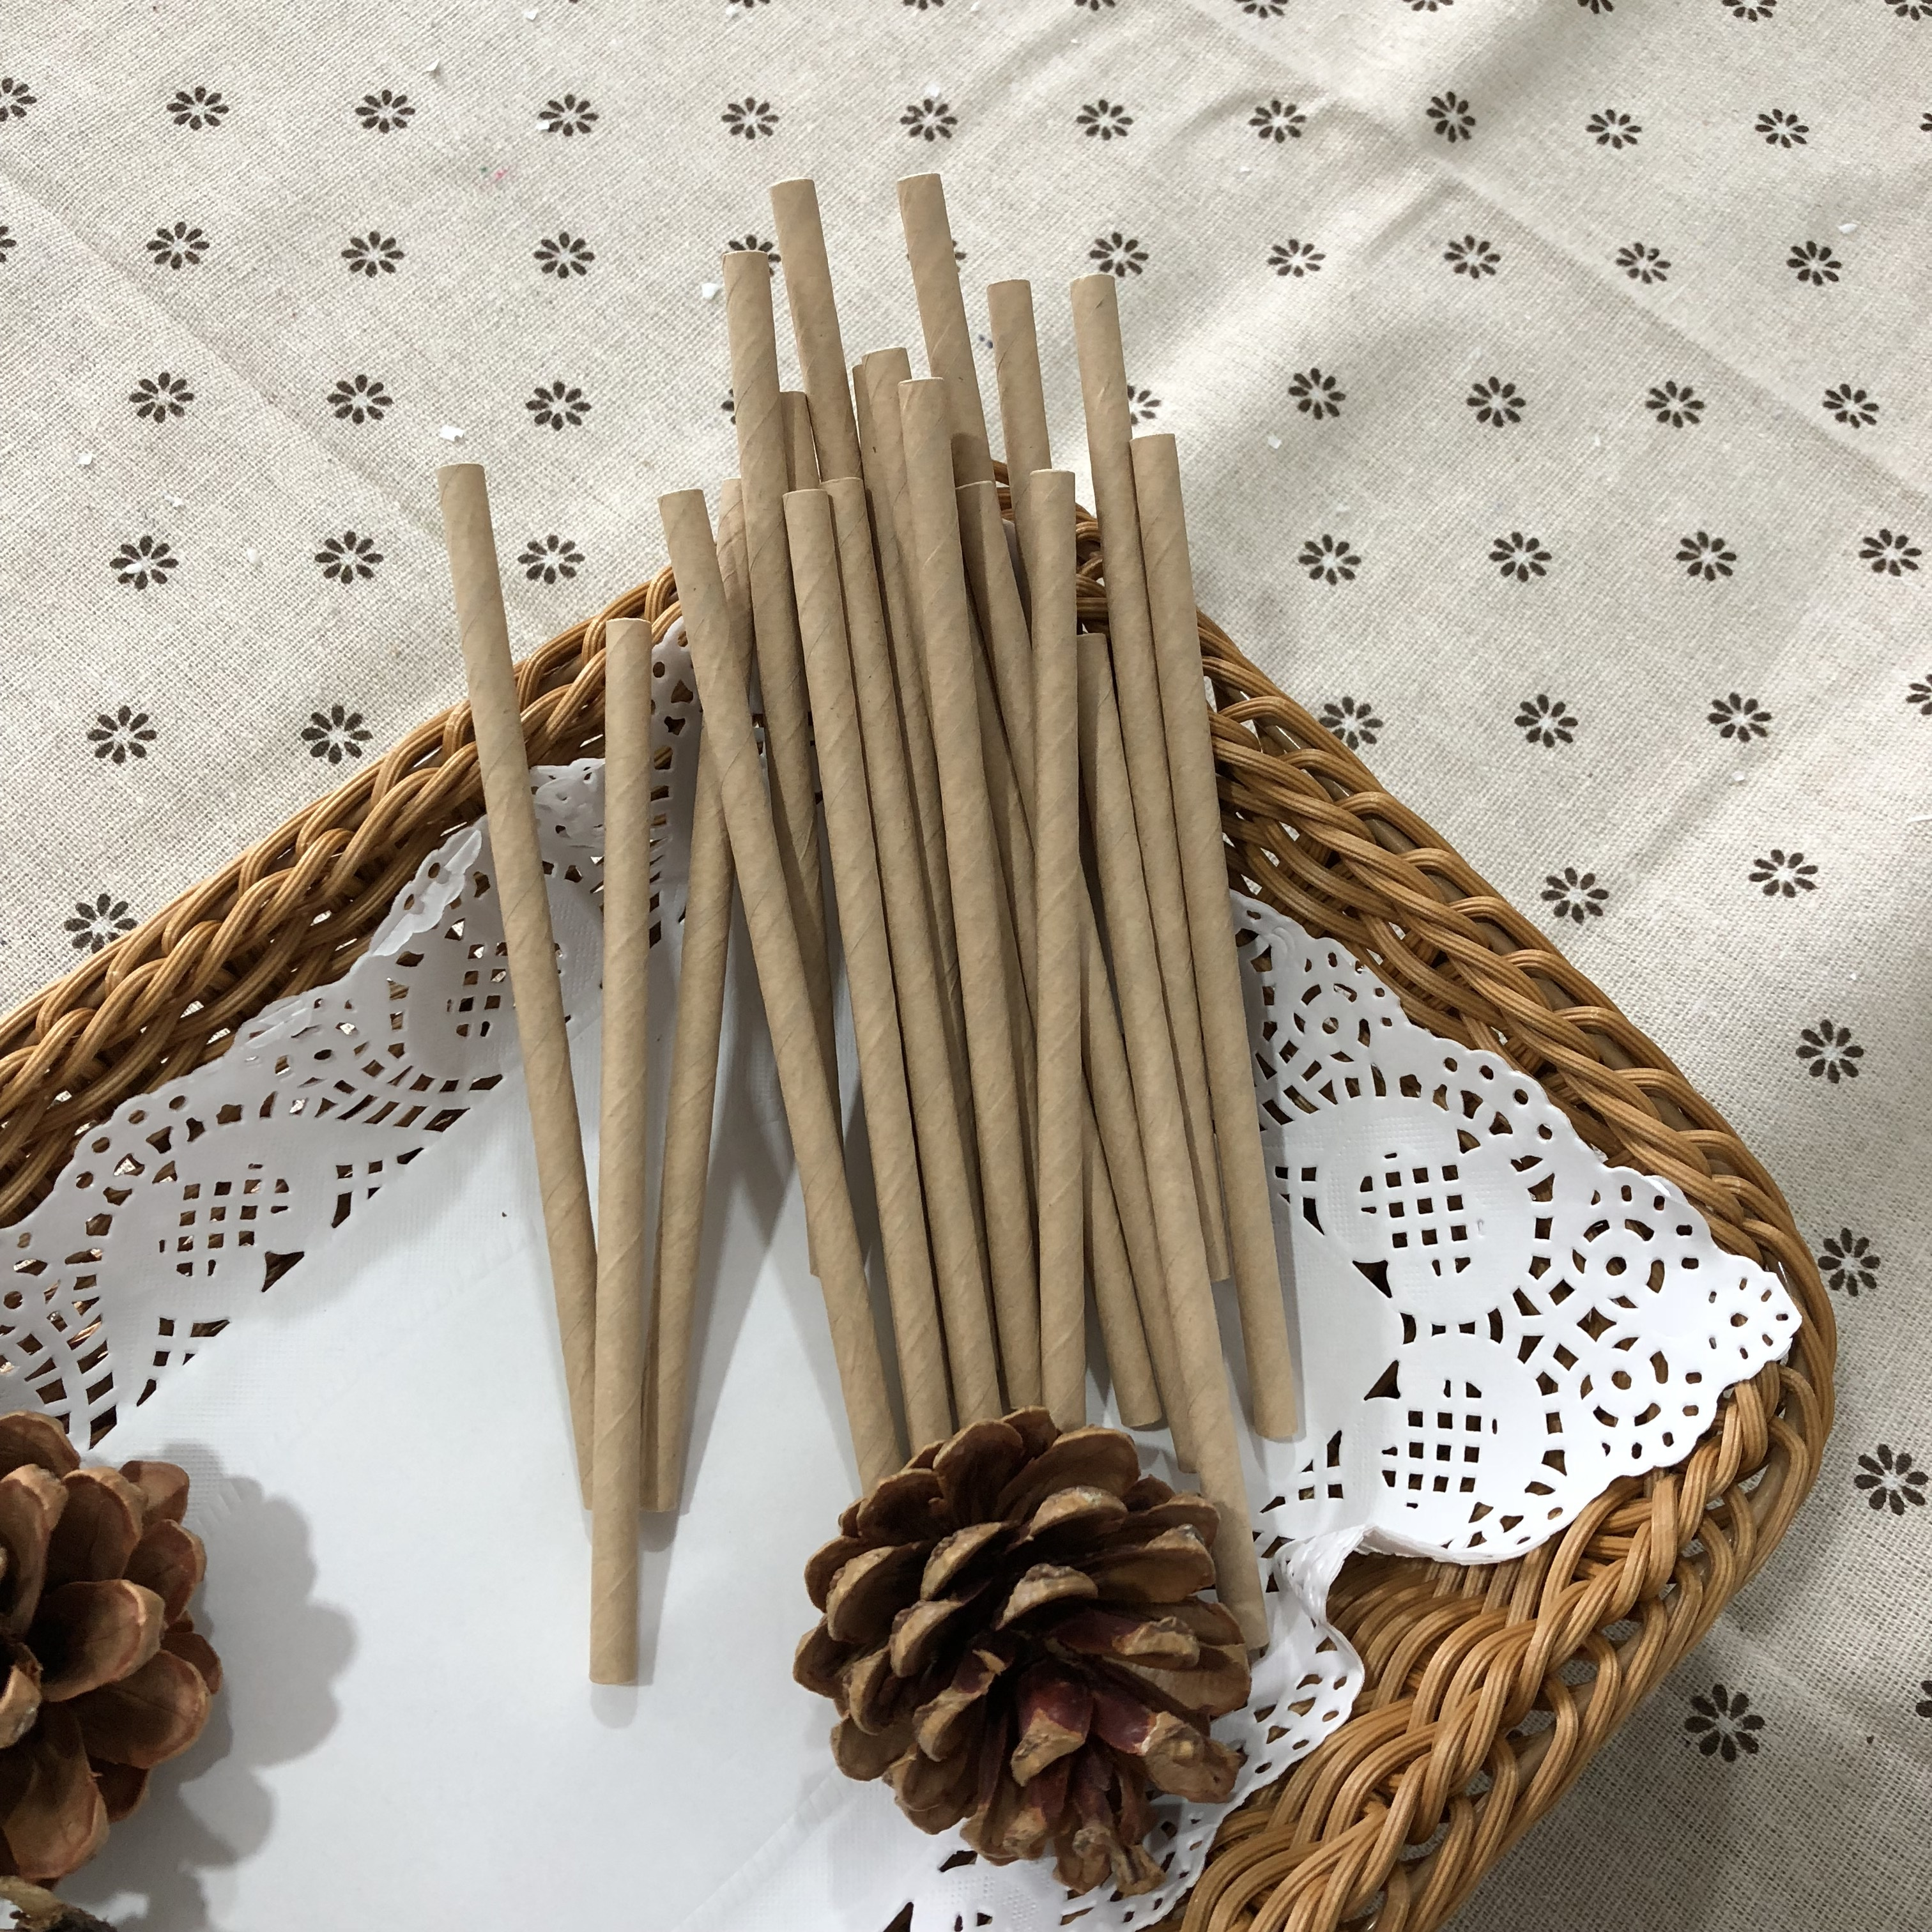 Hemp Paper Paper Straw High Quality Paper Straws Manufacturers - Buy Hemp  Paper Paper Straw,Food Grade Paper Drinking Straw,Eco Friendly Paper